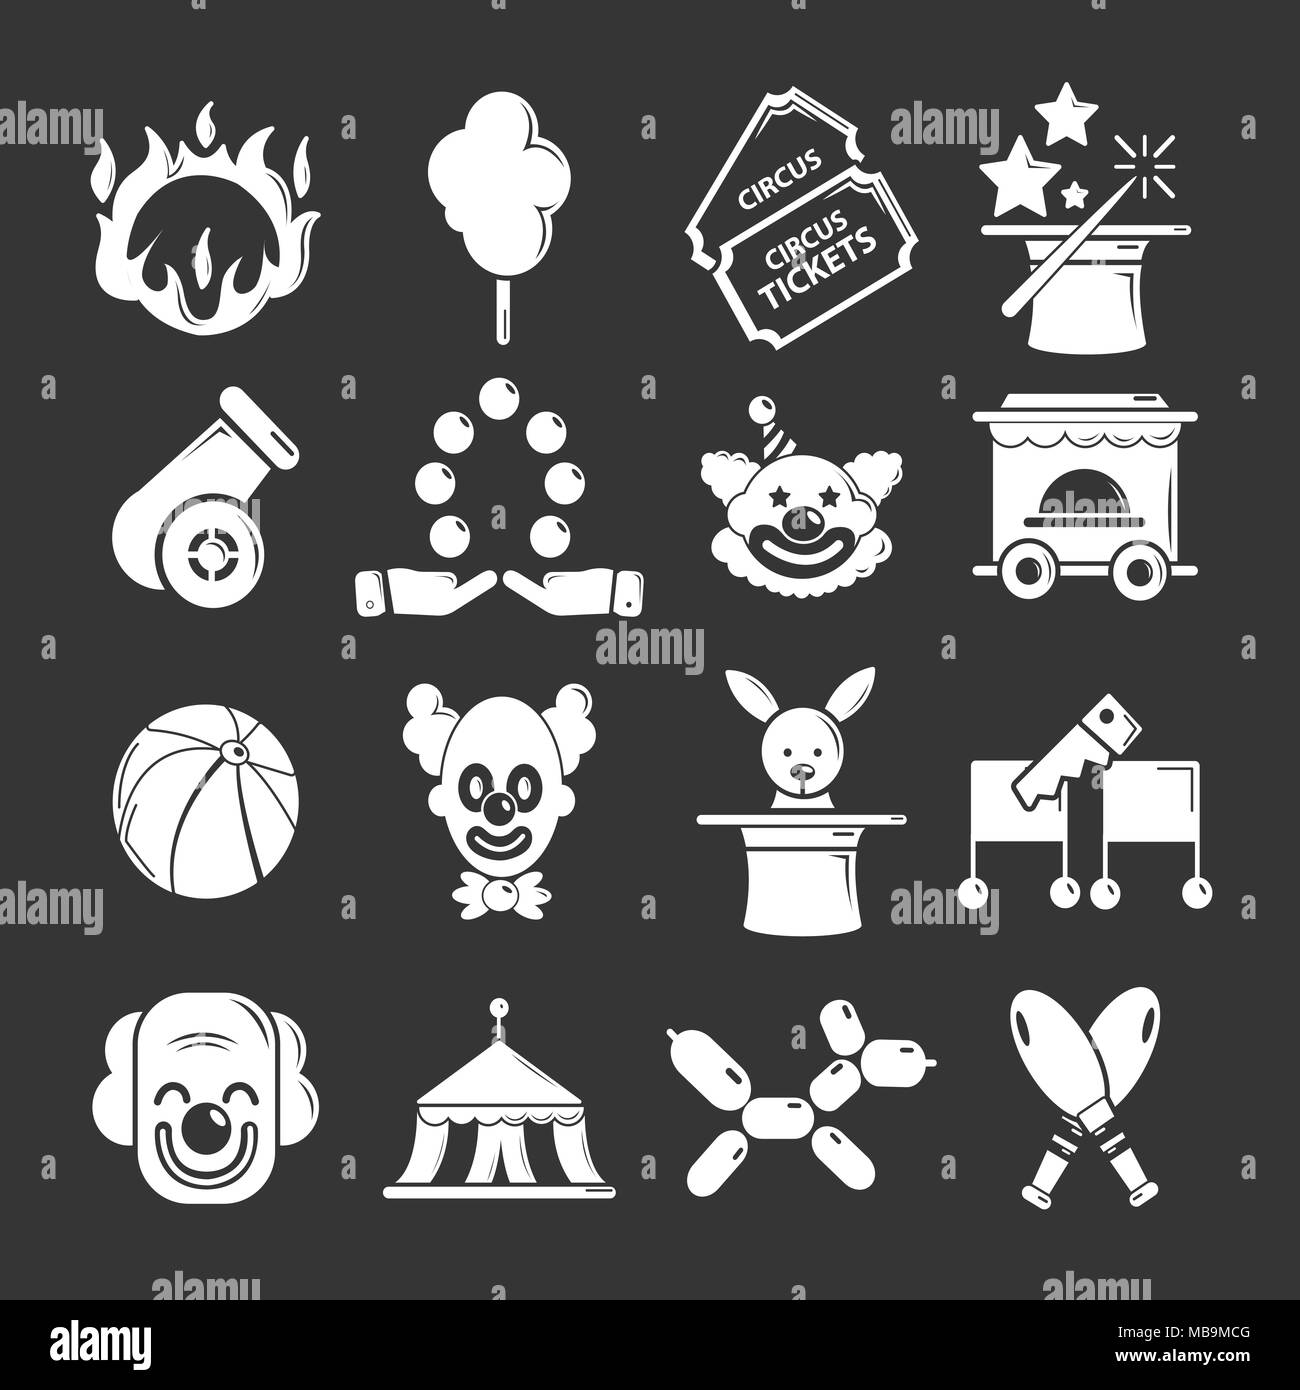 Circus icons set grey vector - Stock Image